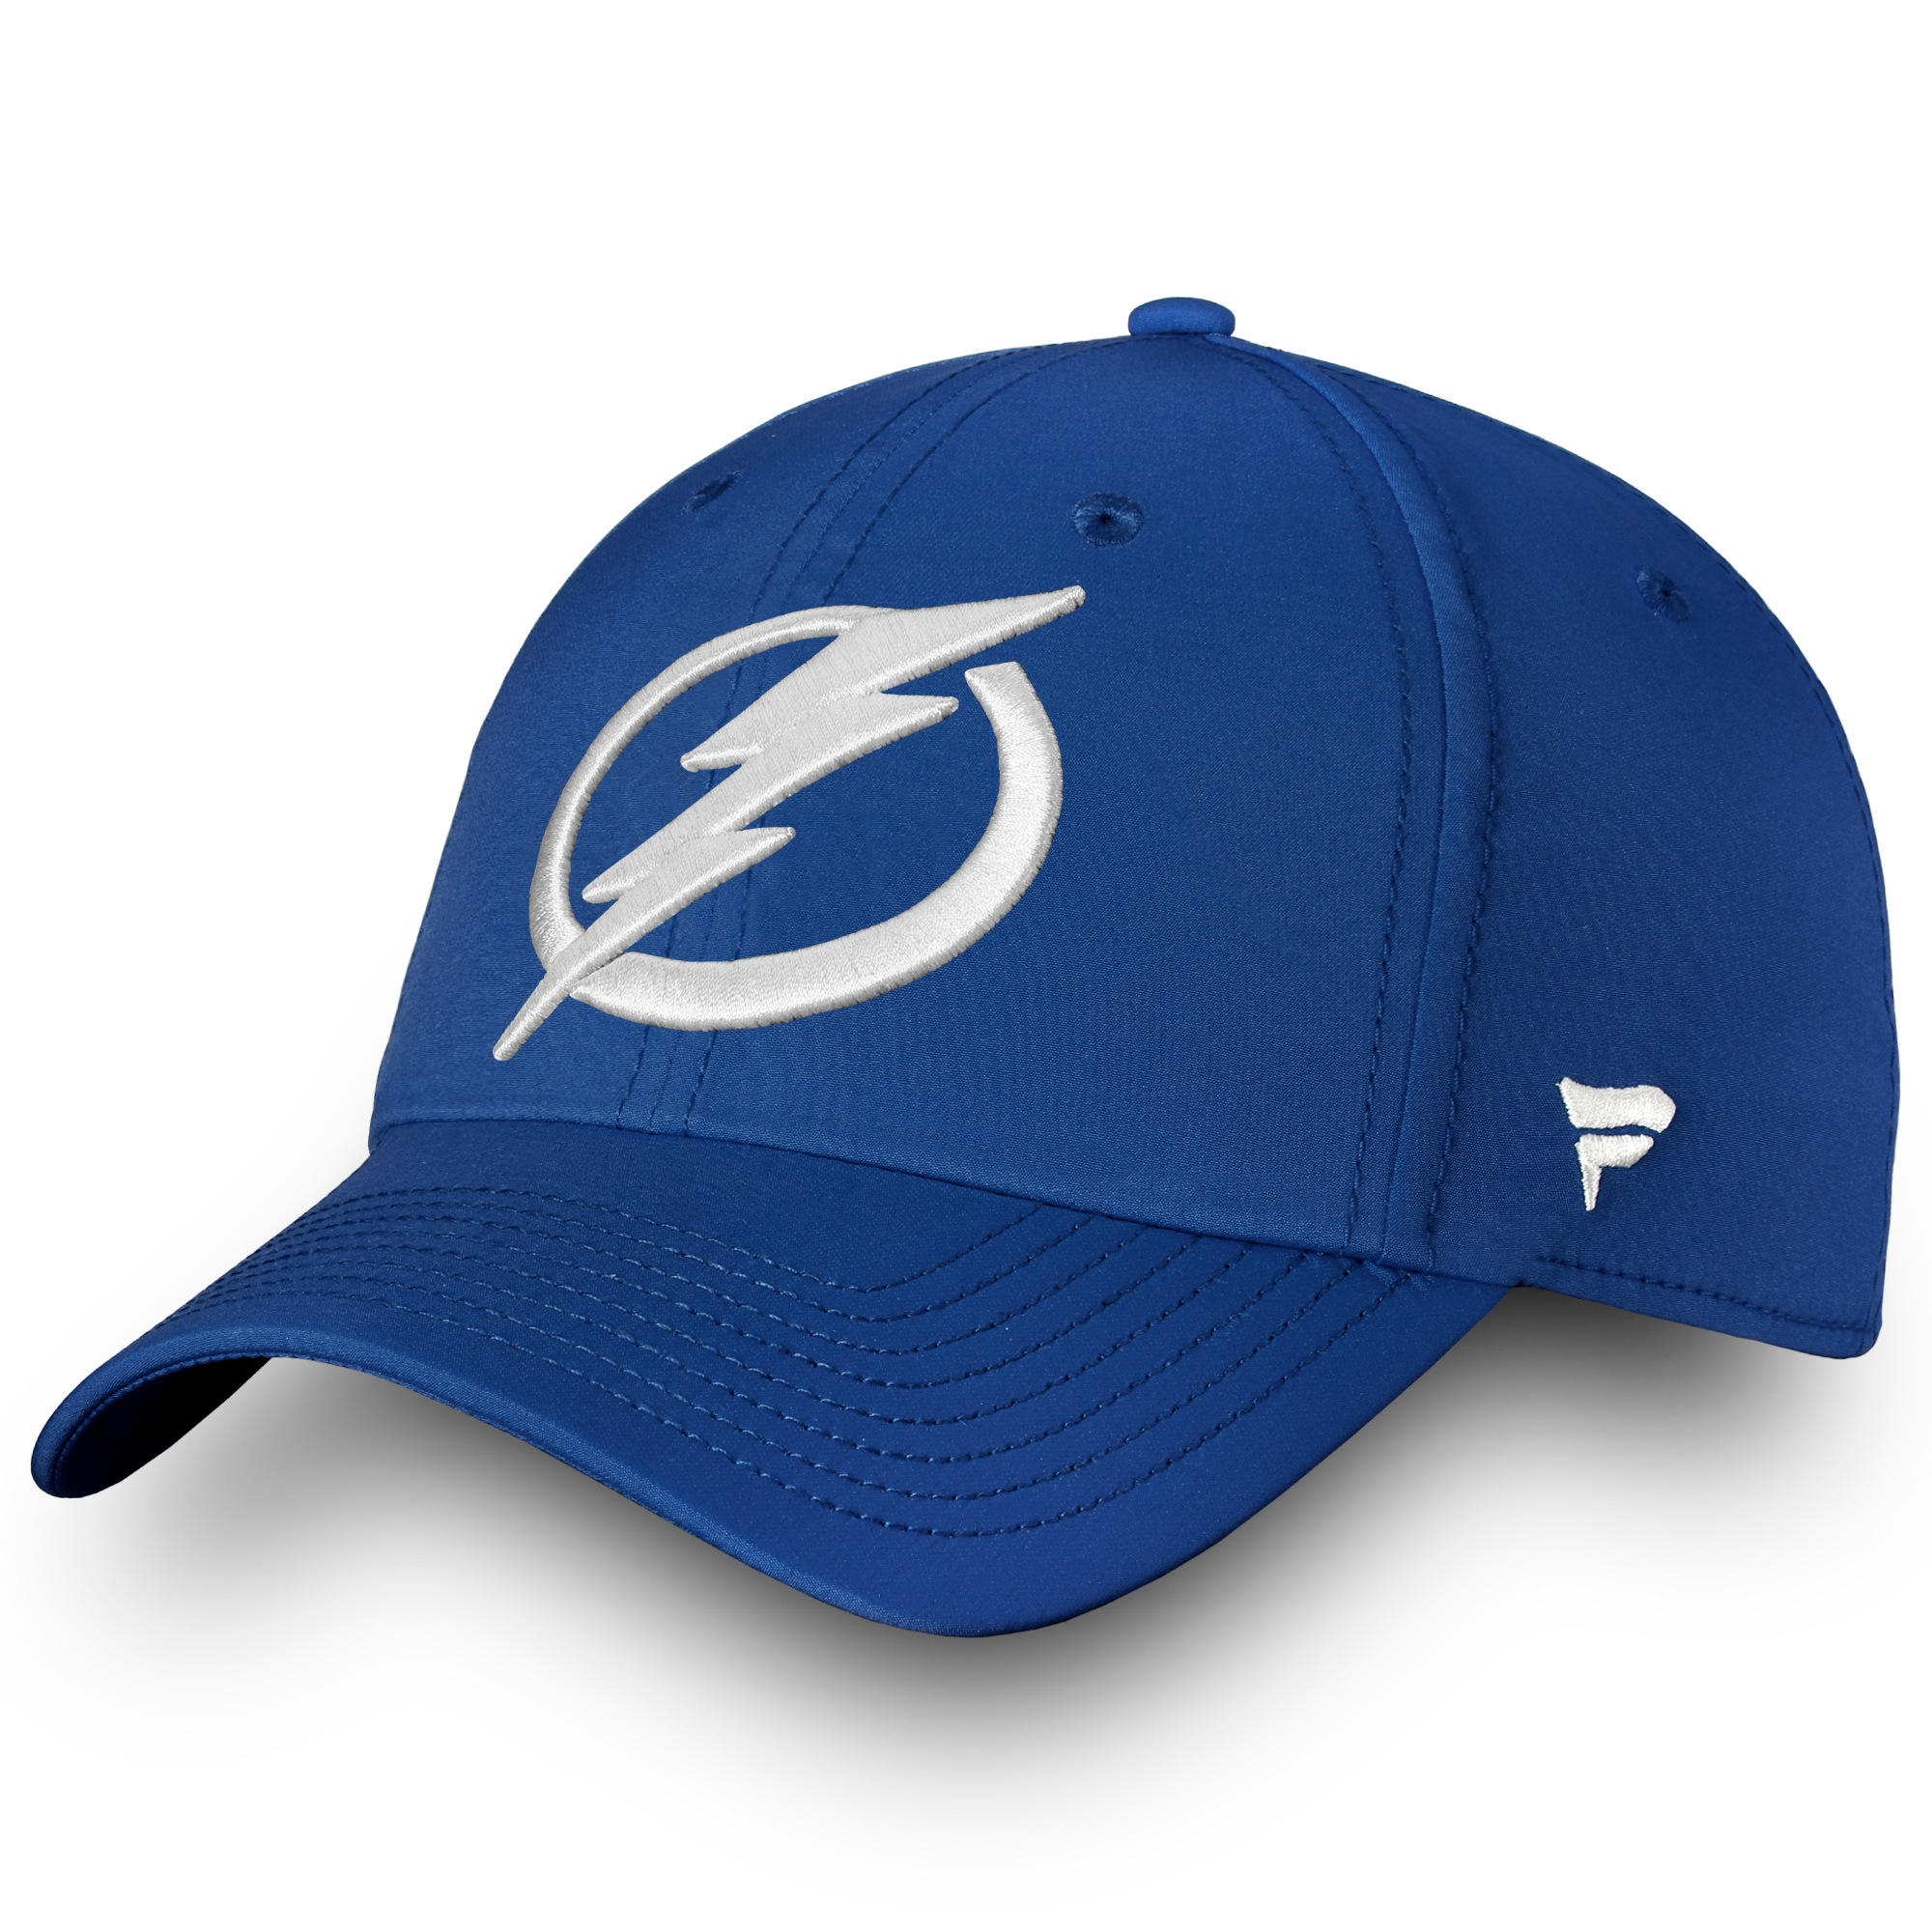 Tampa Bay Lightning Fanatics Branded Women's Iconic Fundamental Adjustable Hat - Blue - OSFA